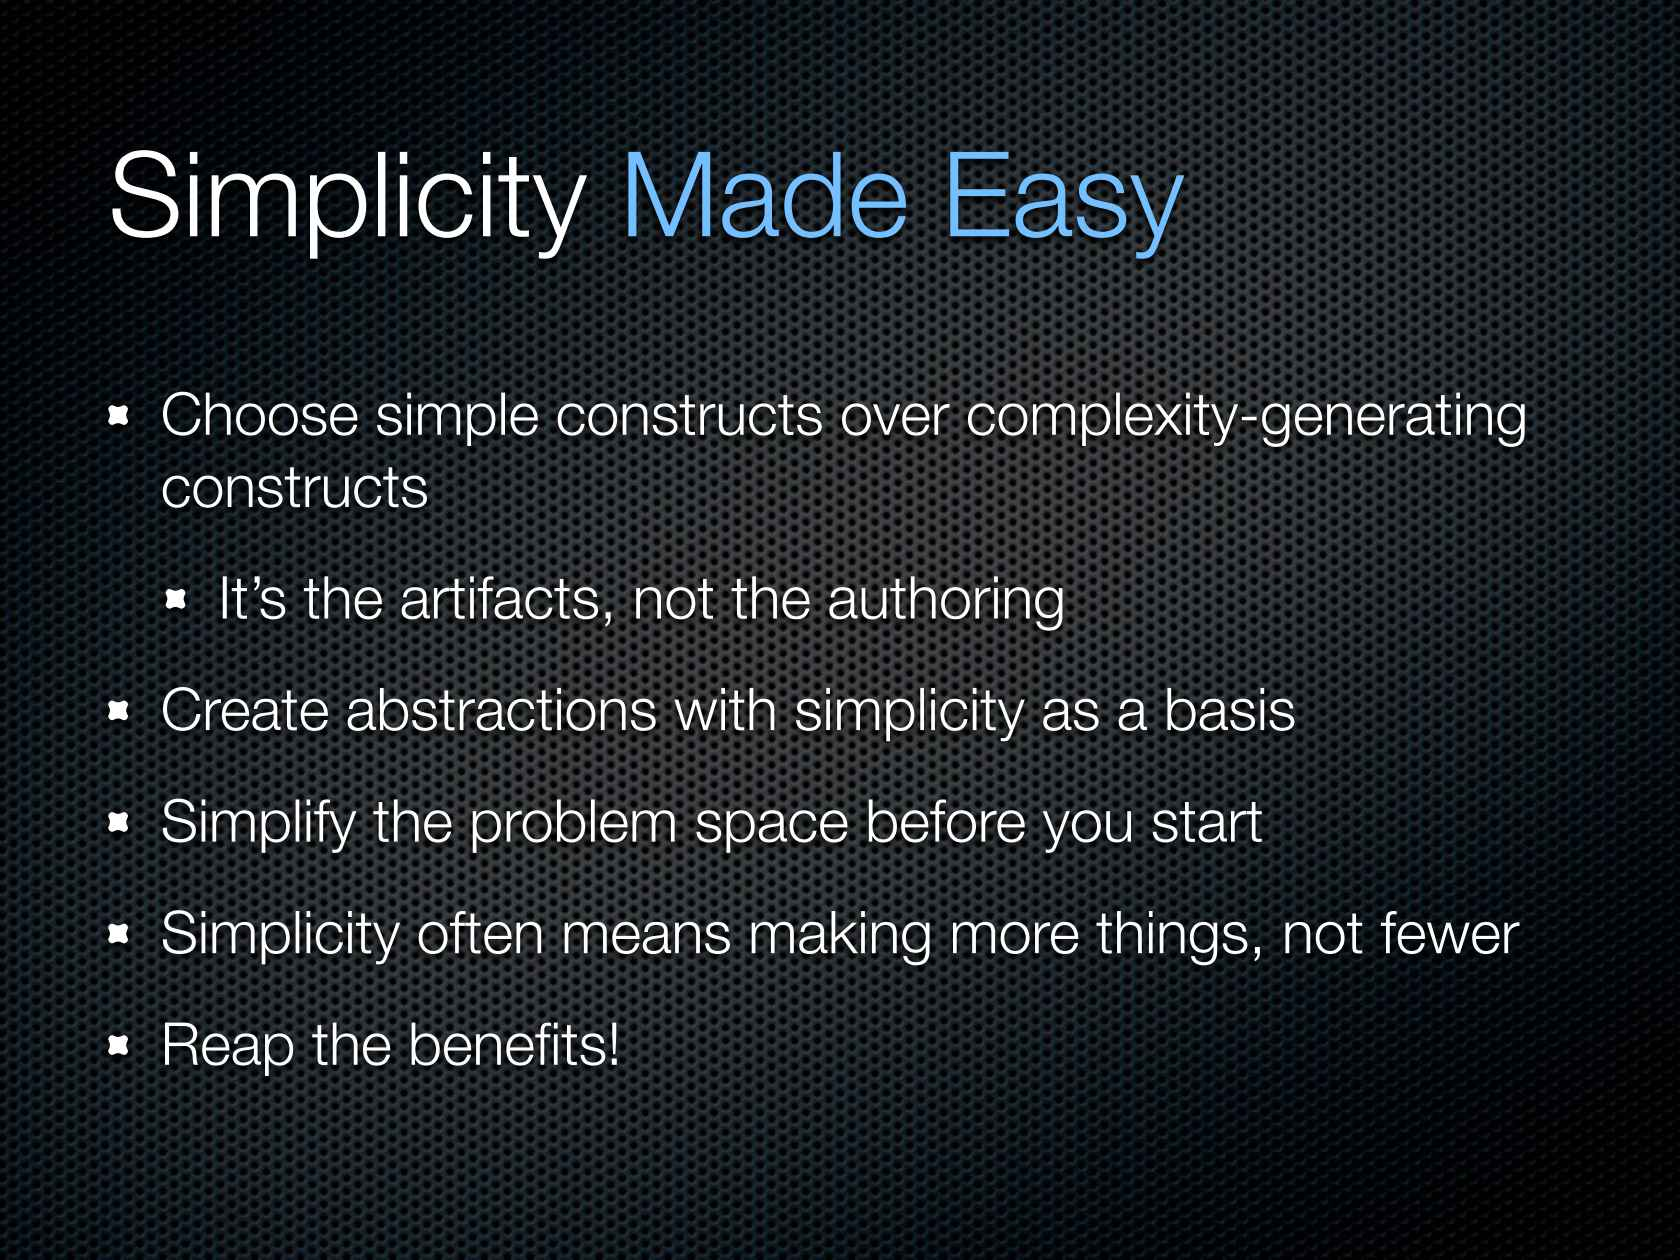 Choose simple constructs over complexity-generating constructs; It's the artifacts, not the authoring; Create abstractions with simplicity as a basis; Simplify the problem space before you start; Simplicity often means making more things, not fewer; Reap the benefits!